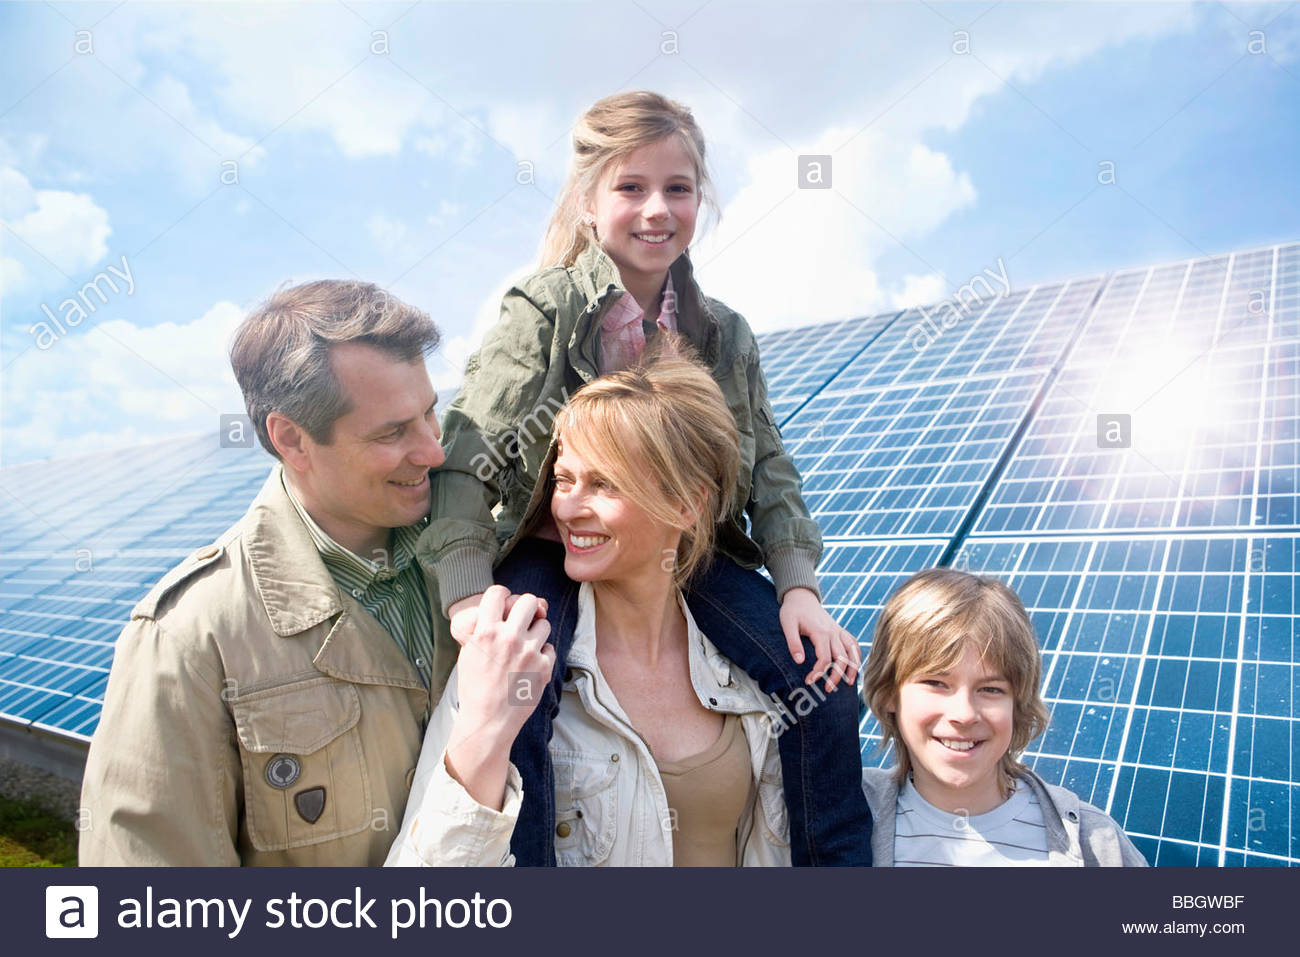 Family posing together front solar panels Munich, Bavaria, Germany - Stock Image